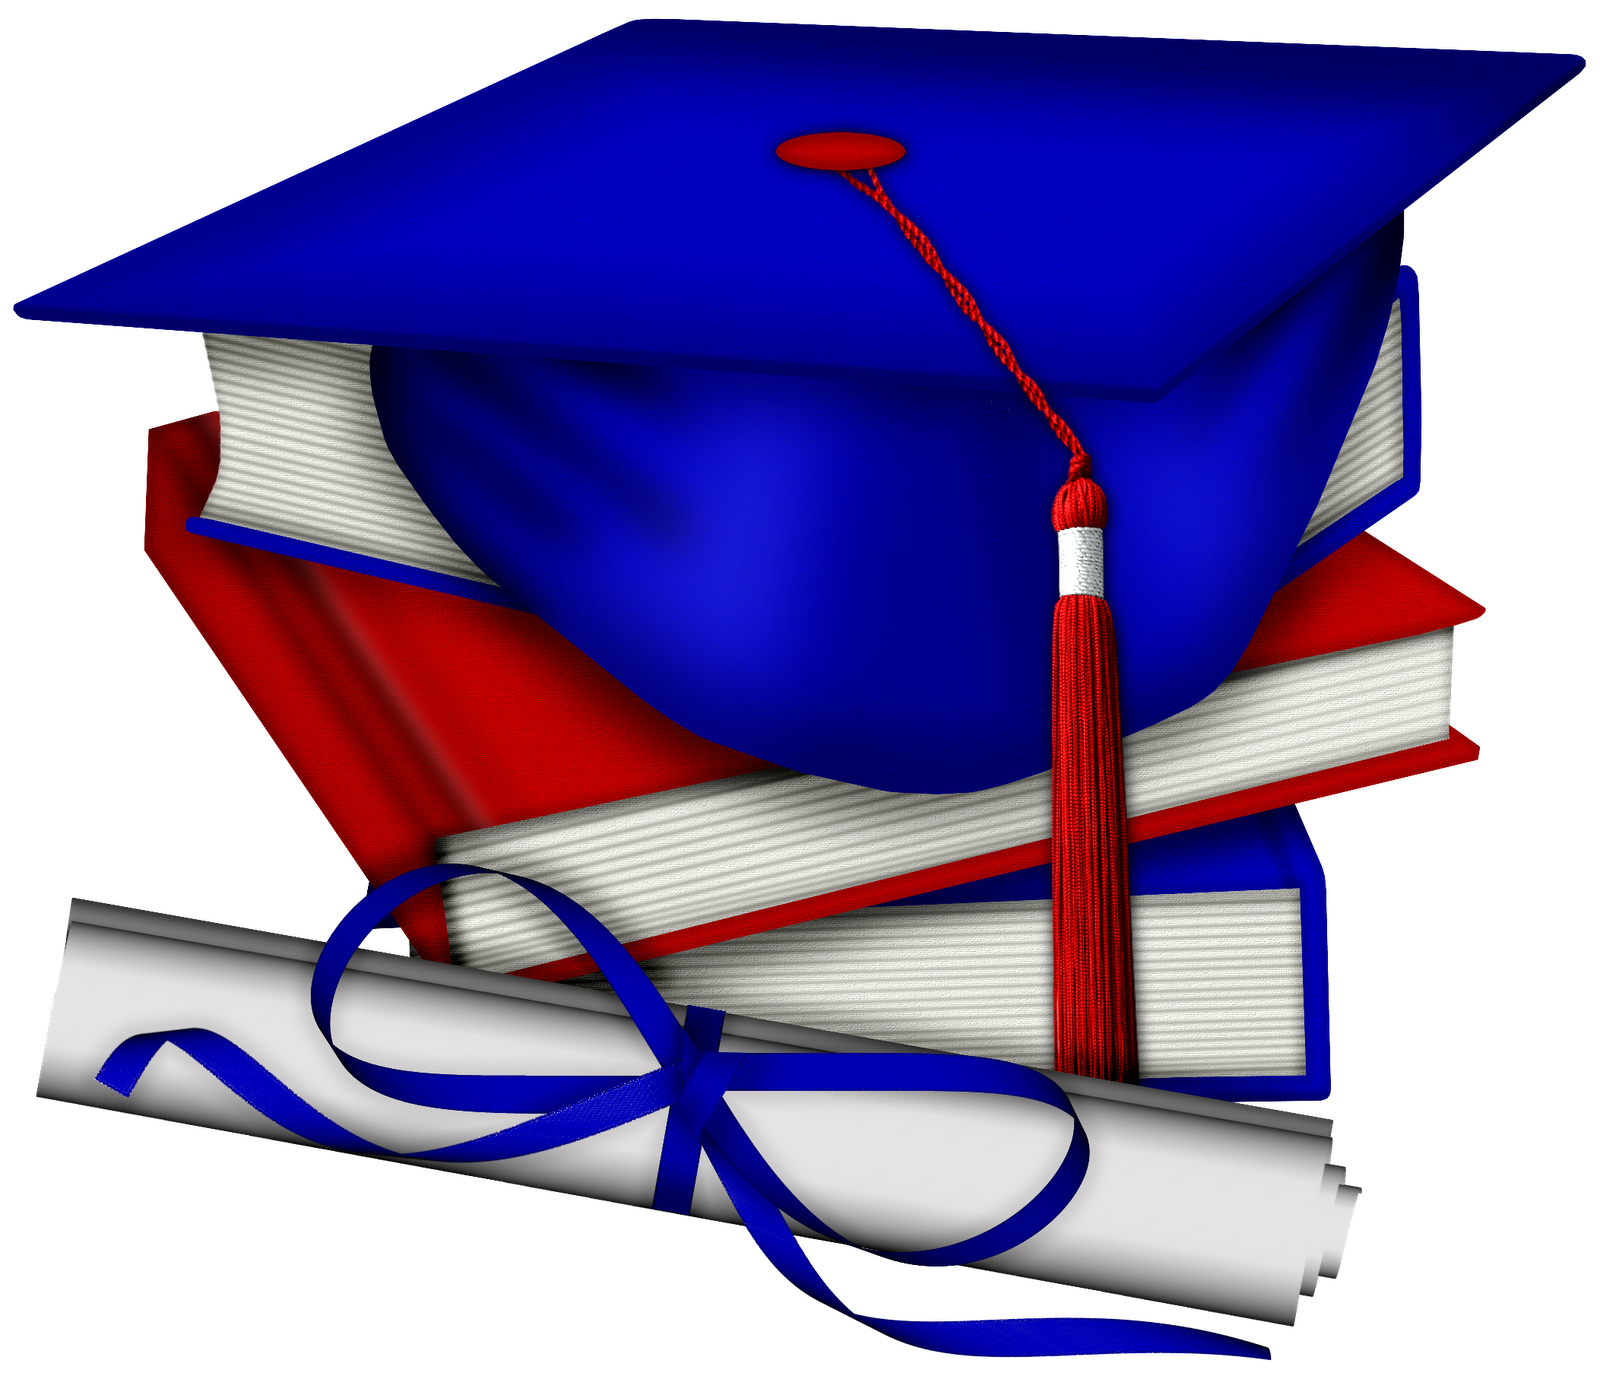 svg library stock Blue free on dumielauxepices. Graduation clipart divider